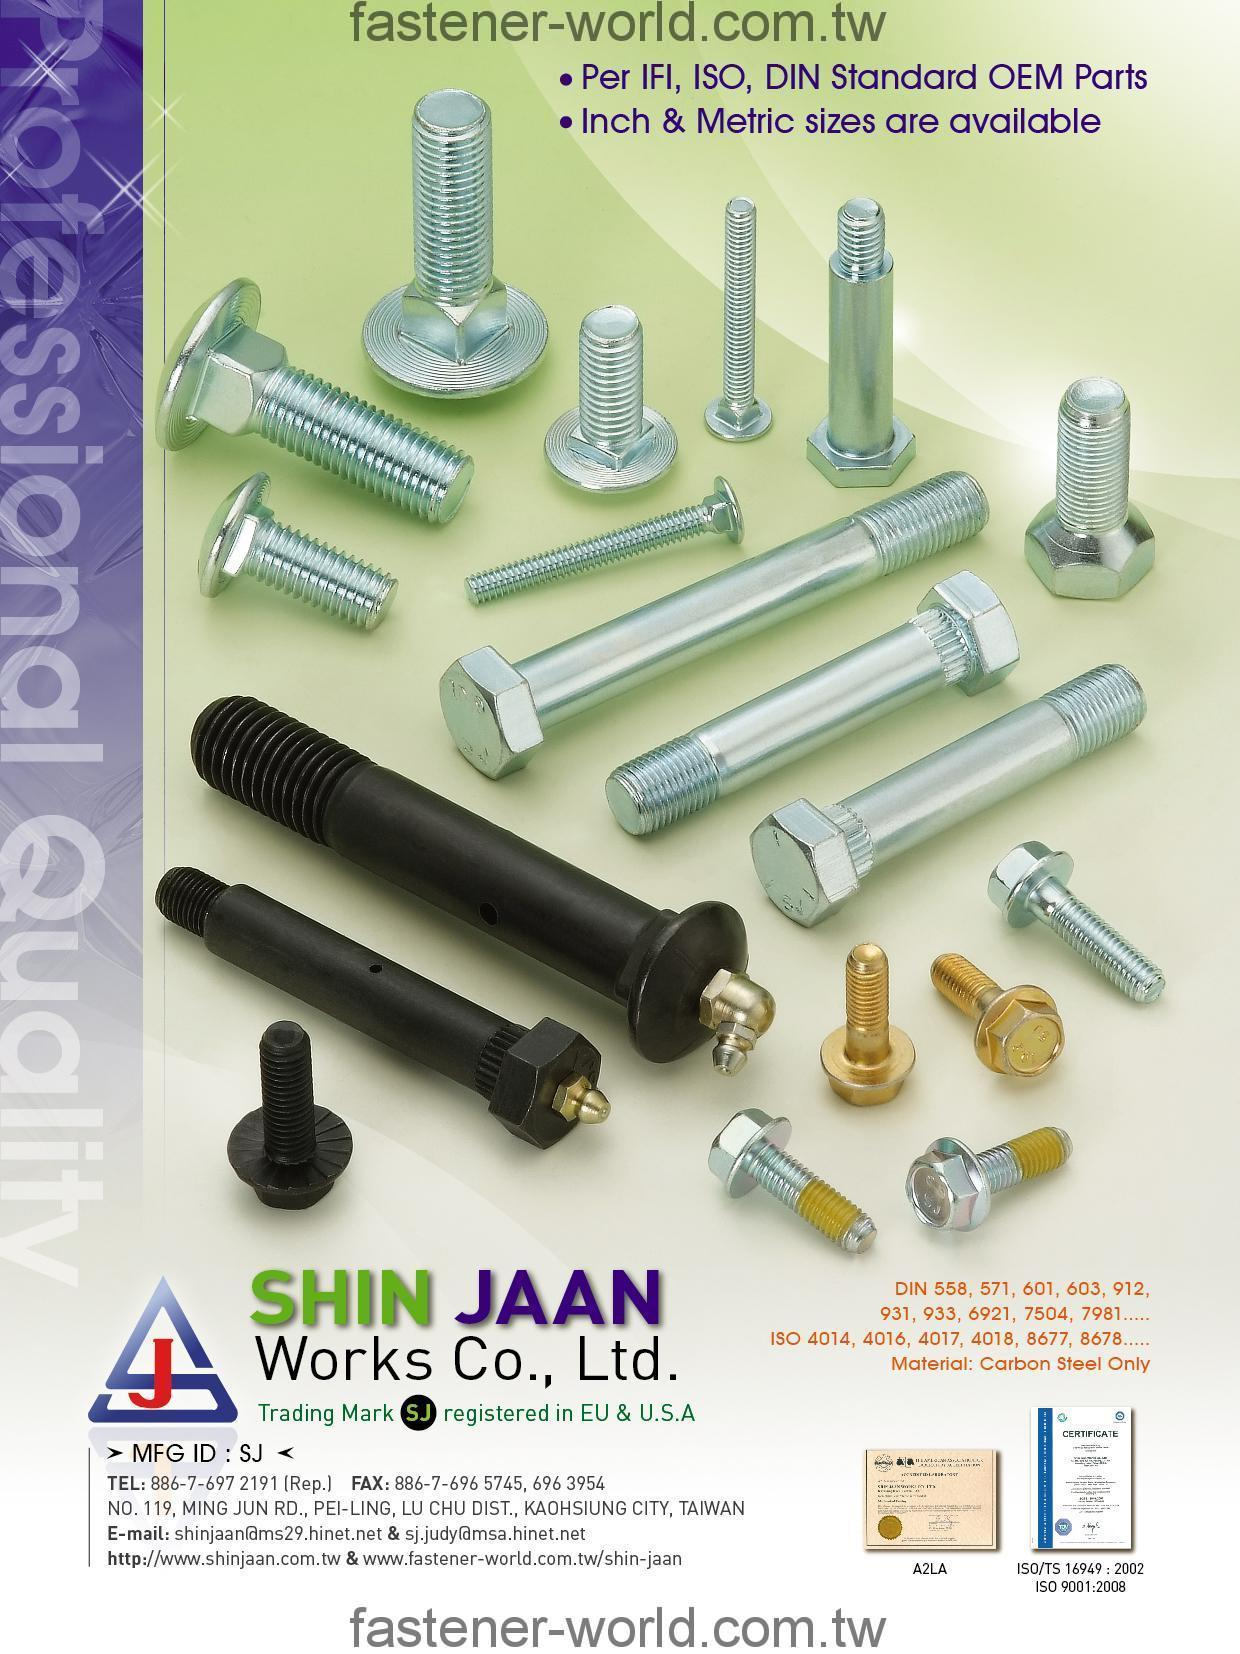 SHIN JAAN WORKS CO., LTD.  Online Catalogues